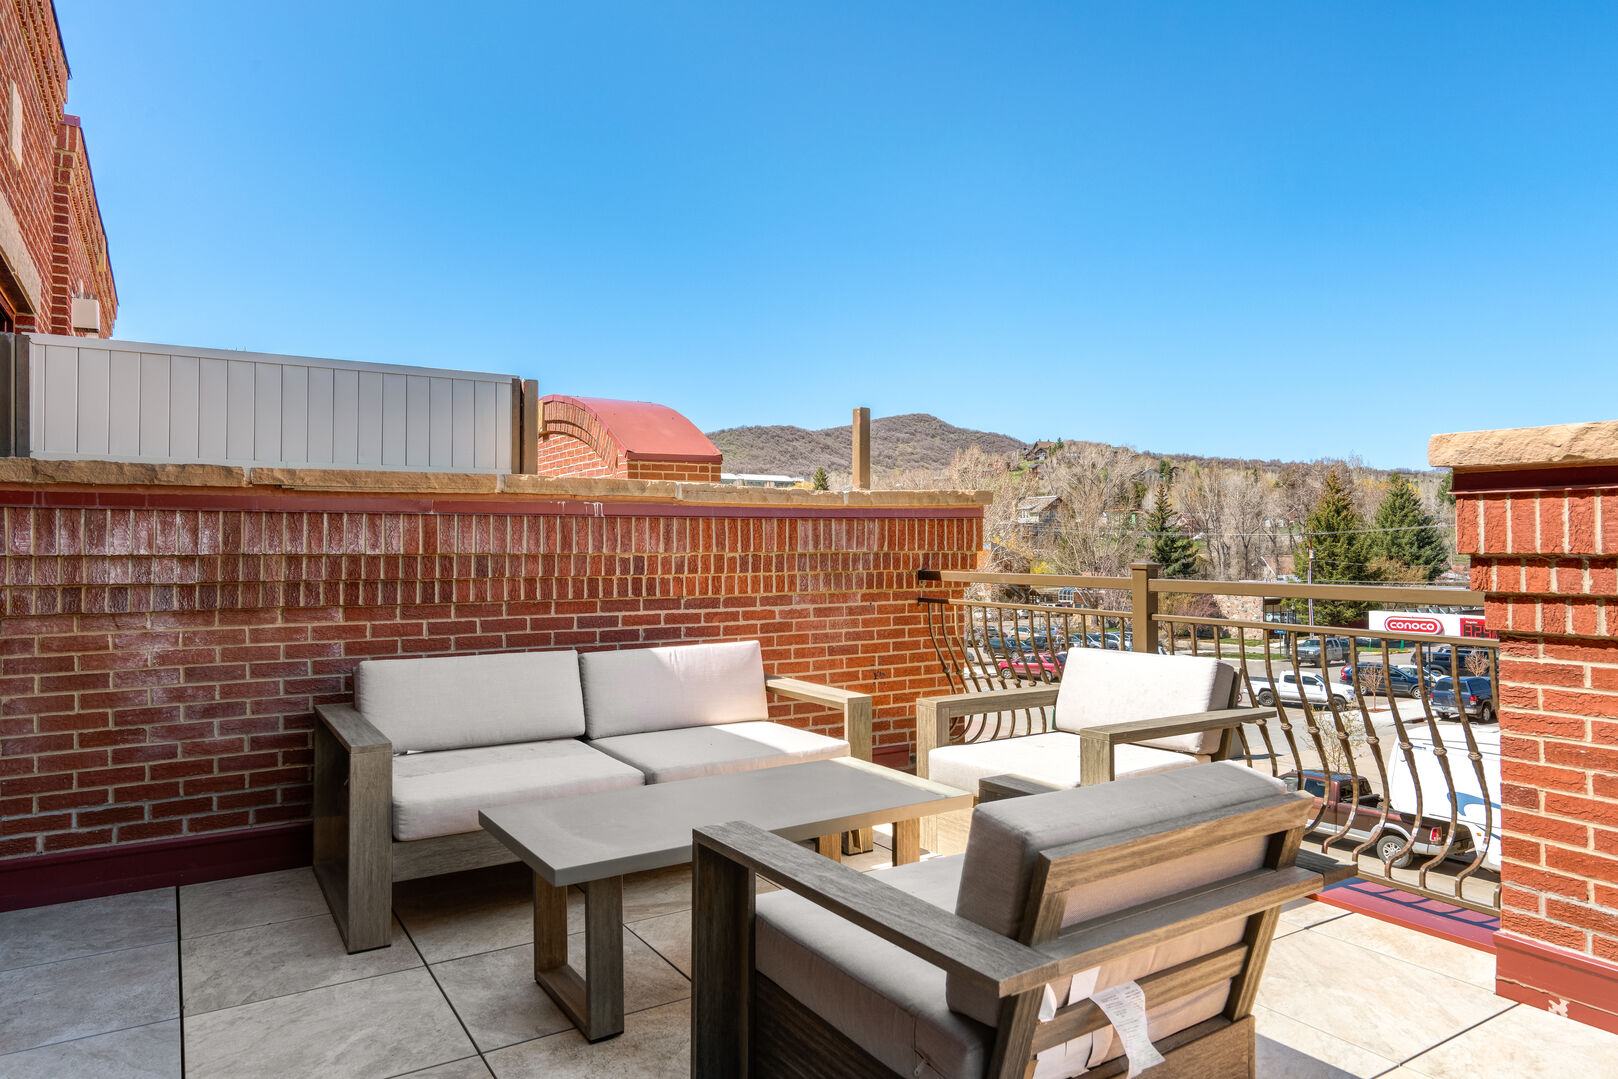 New, comfortable seating to enjoy the cool evenings on the deck.